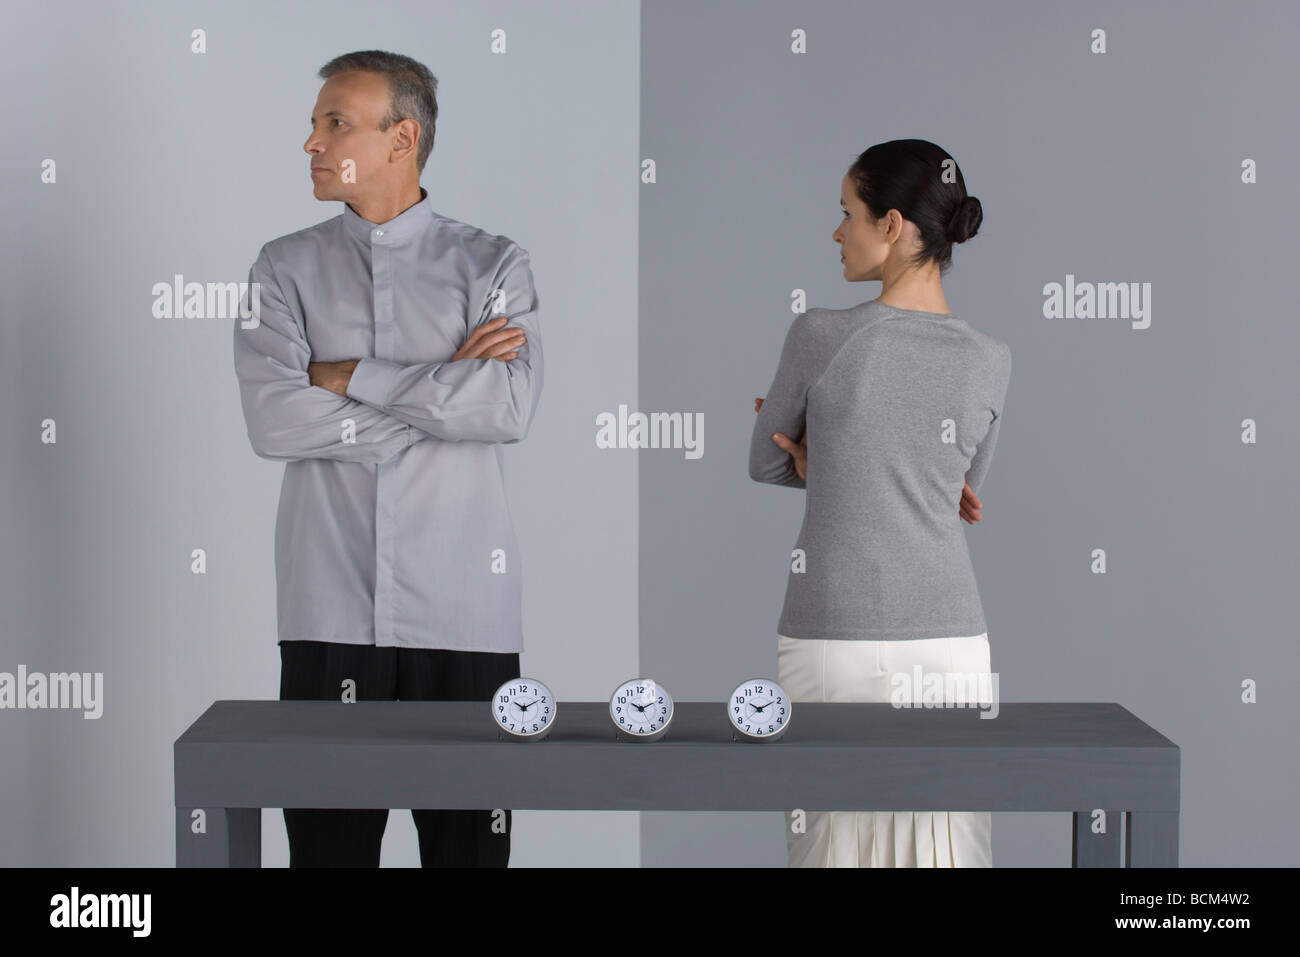 Couple standing with arms folded, backs turned to each other, clocks on table in front of them - Stock Image